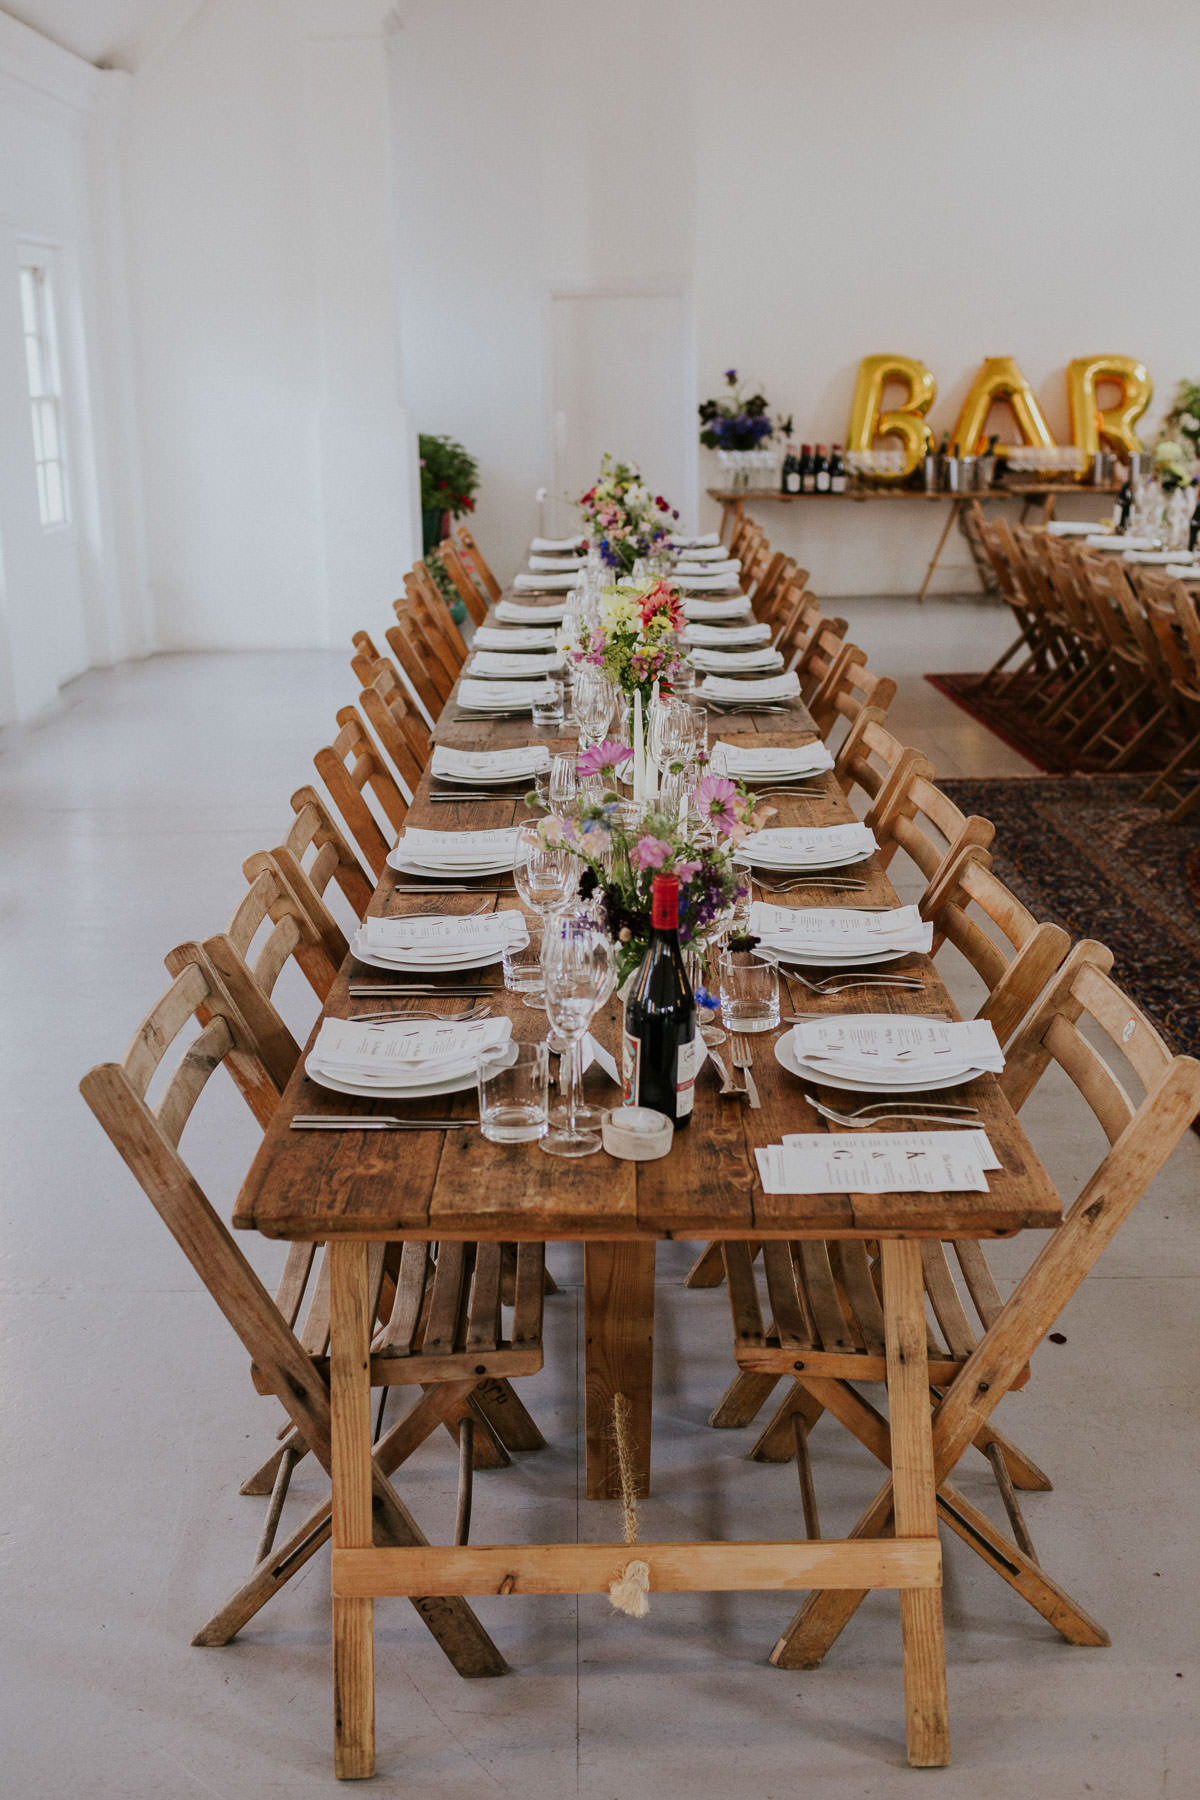 London Wedding at Core Clapton: Cool DIY wedding tables cape with rustic tables and chairs